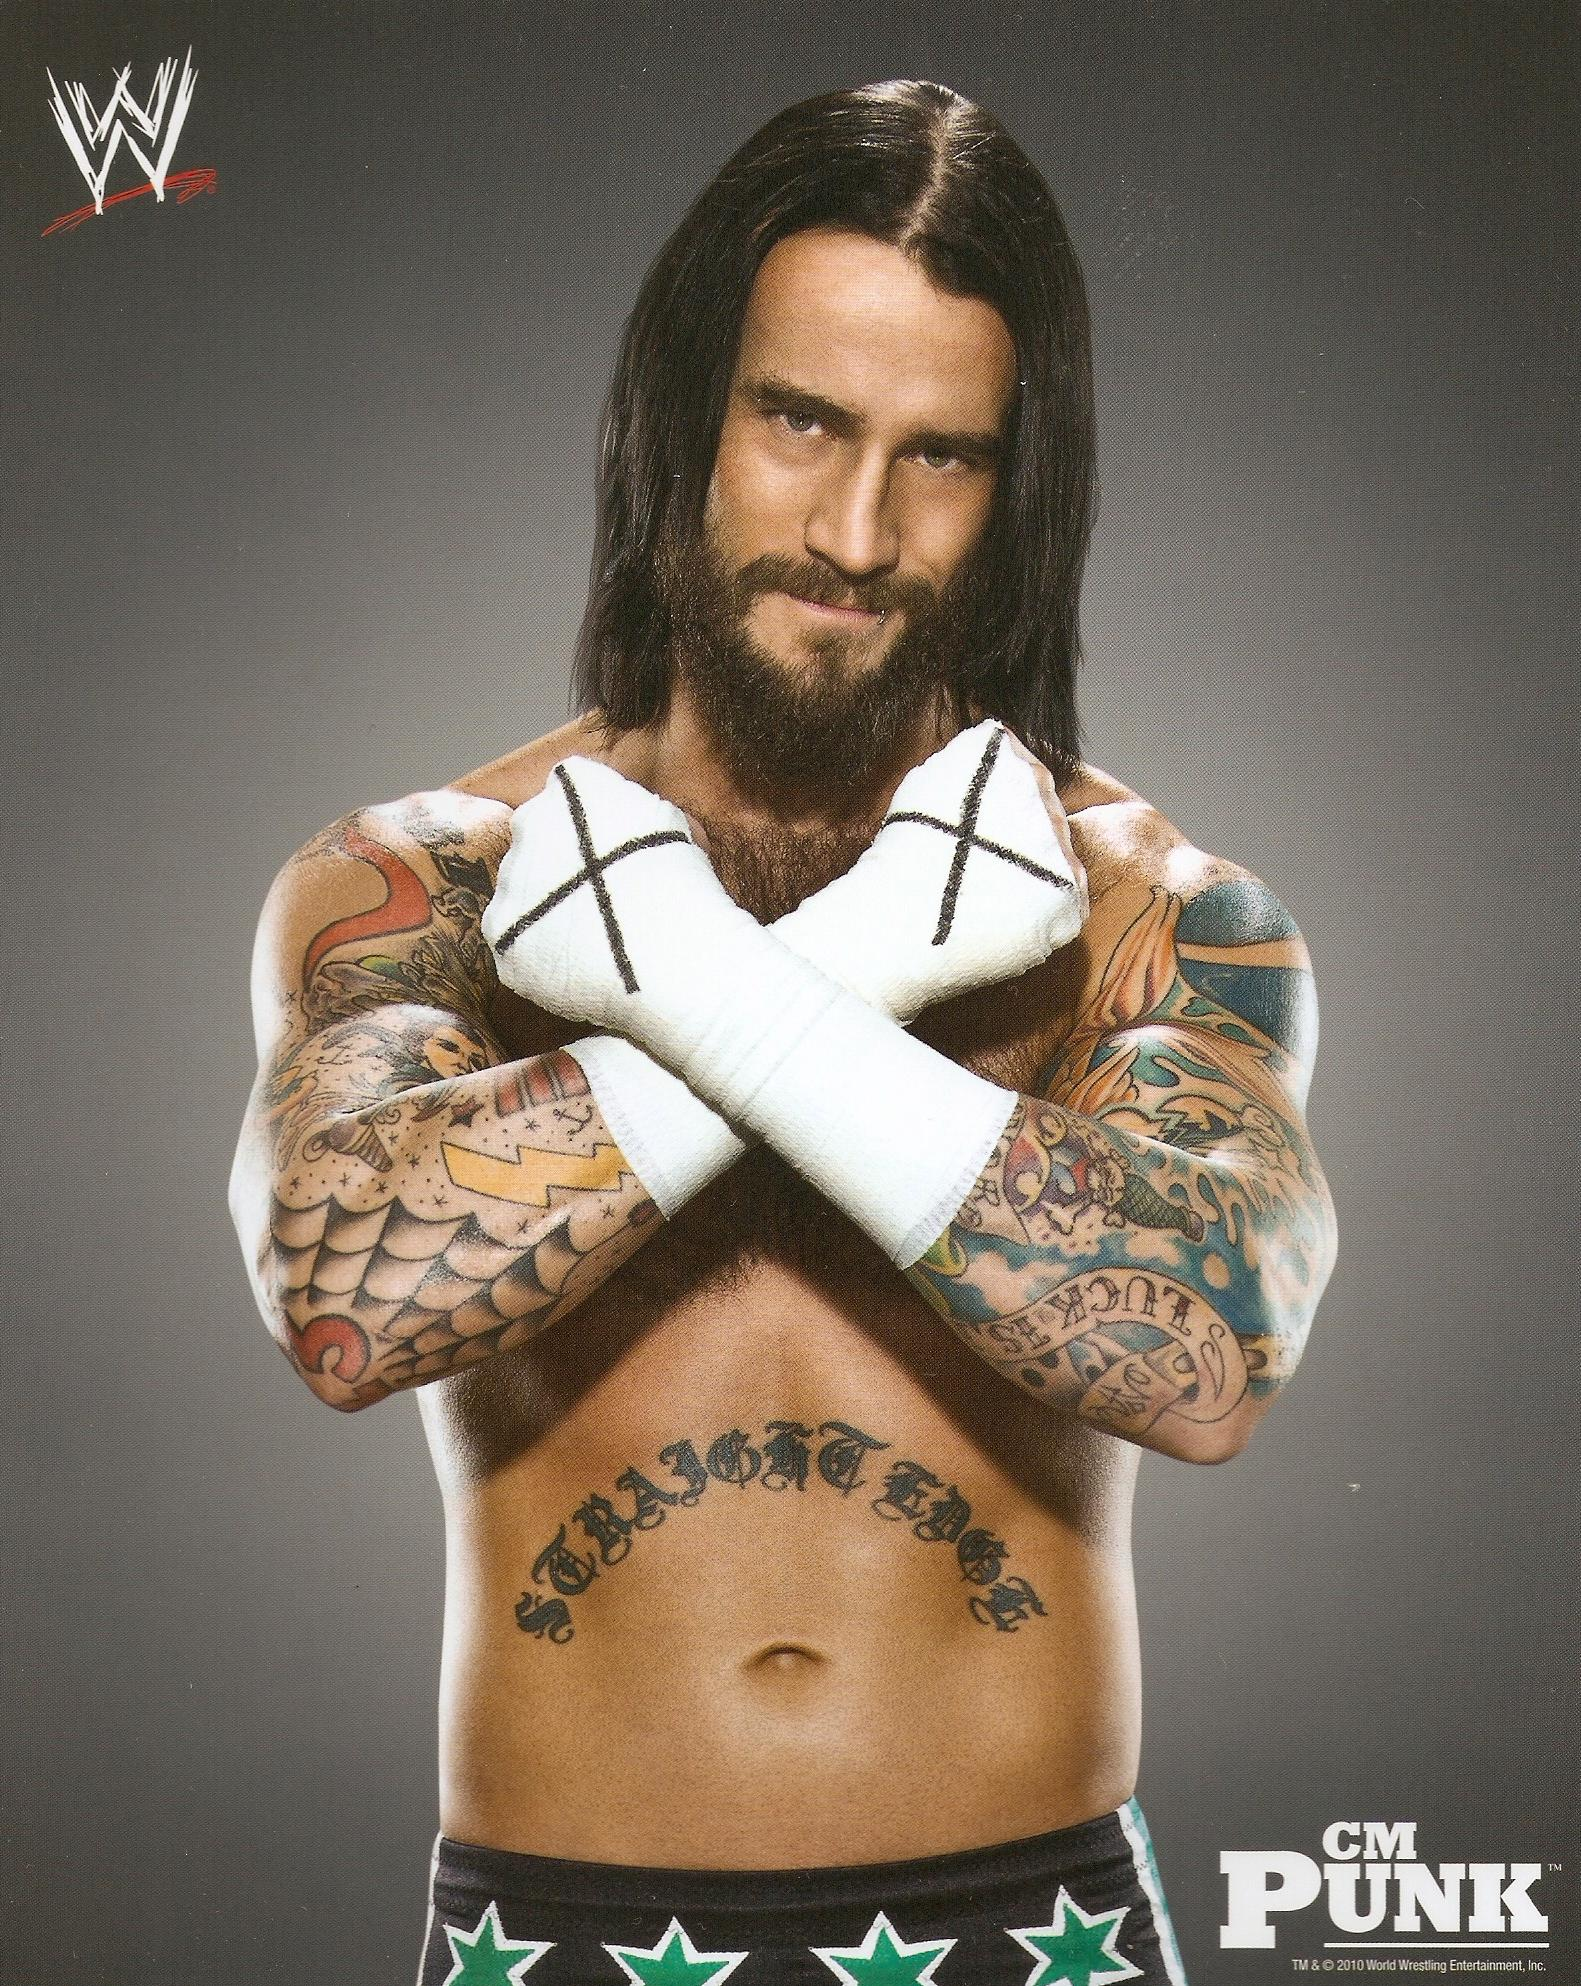 Who is cm punk really hookup